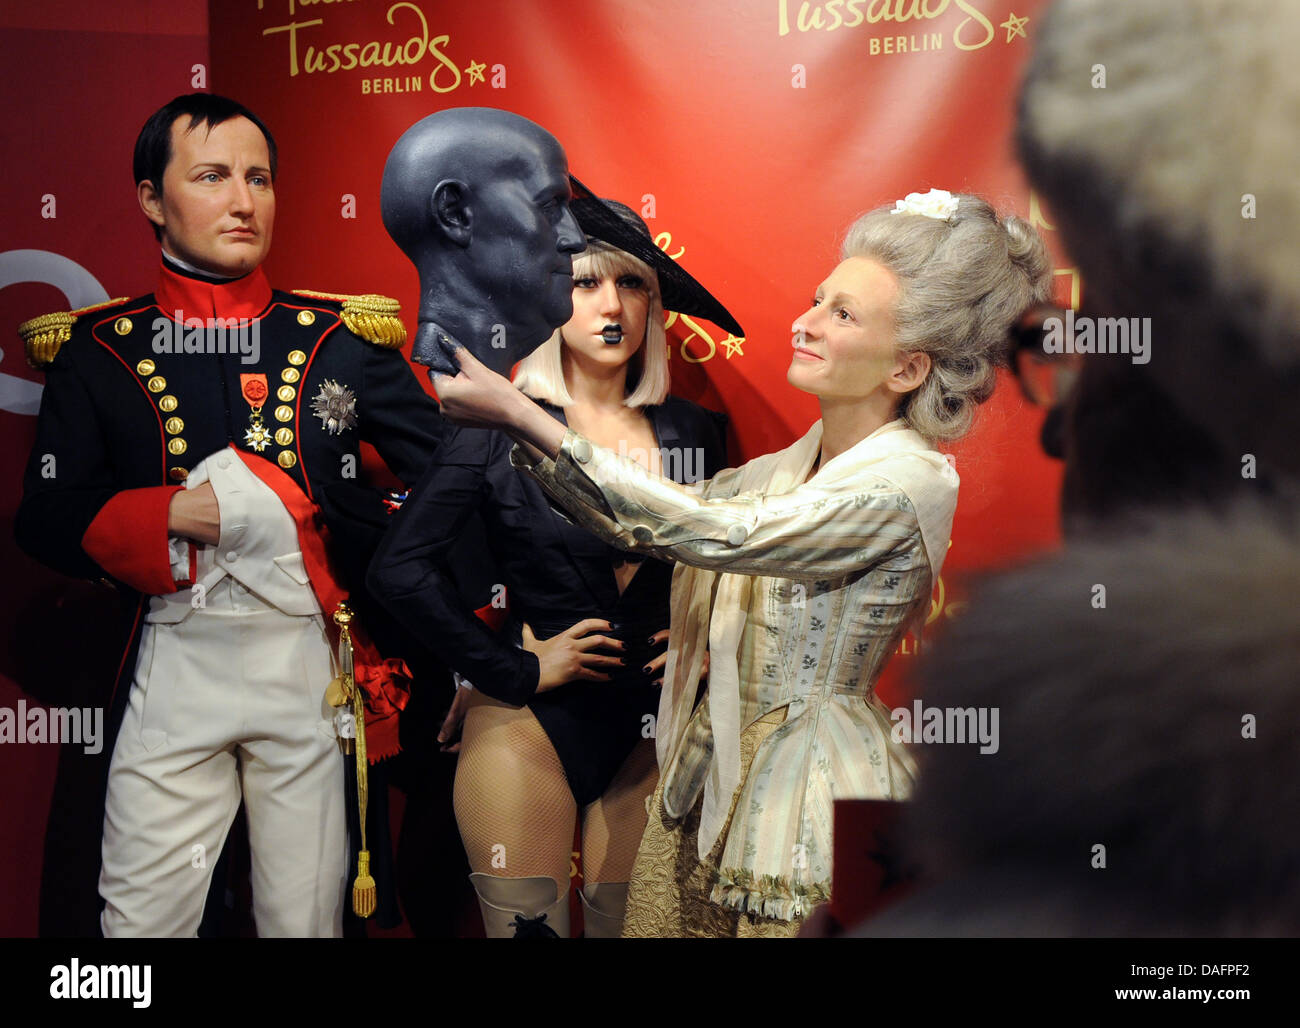 The wax figures of Napoleon Bonaparte (L-R), Lady Gaga and Madame Tussaud are on display on occasion of the 250th - Stock Image